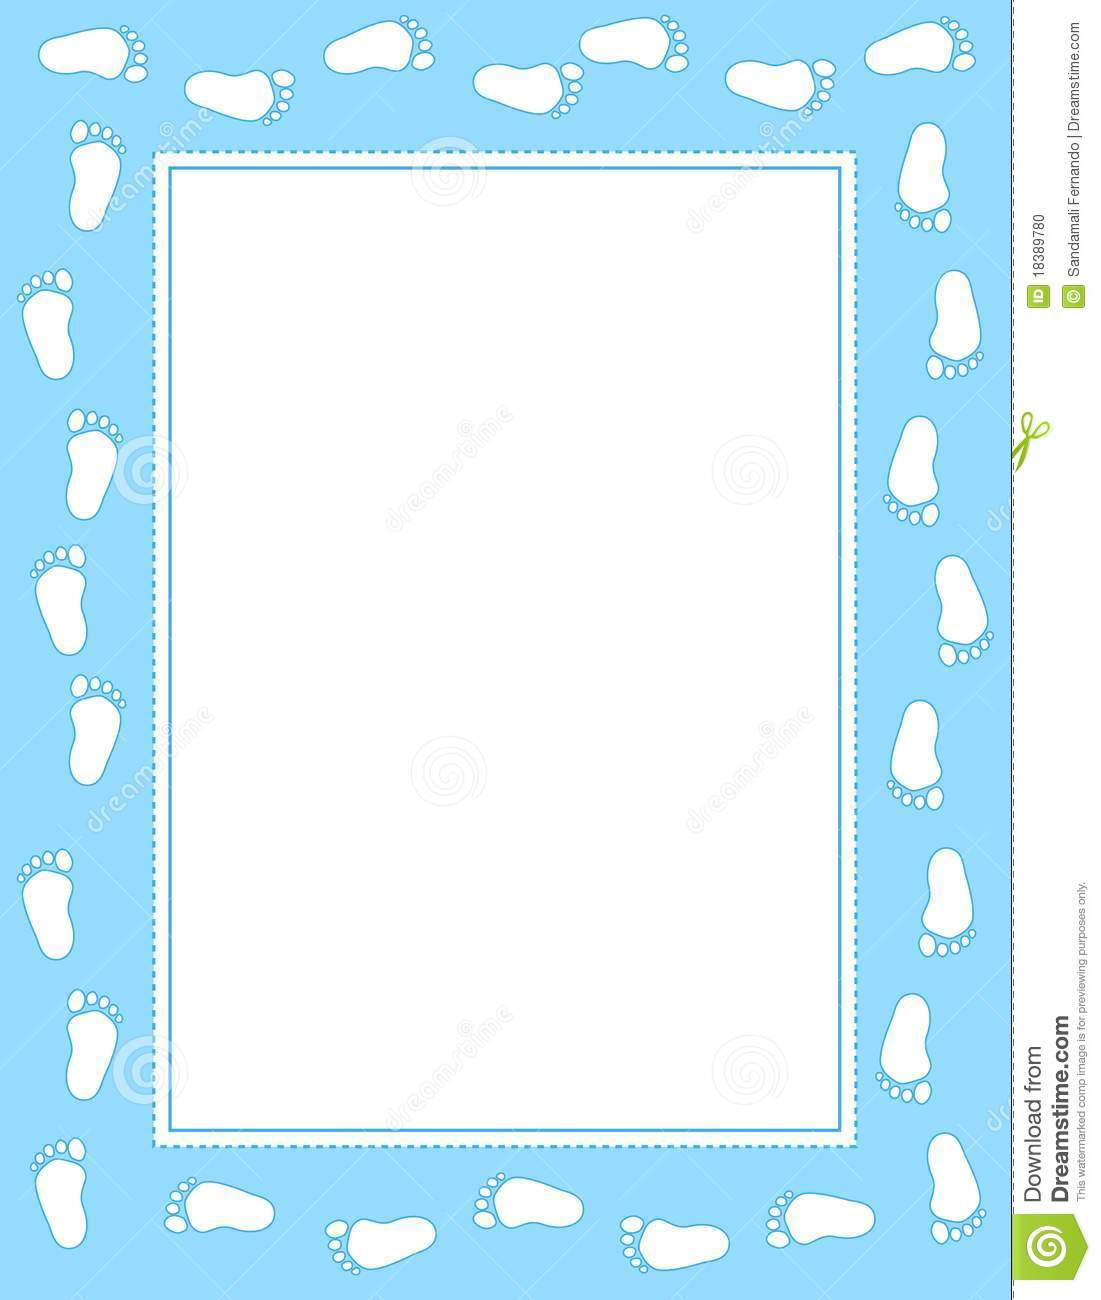 Baby Boy Feet Borders Frames Stock Illustrations 16 Baby Boy Feet